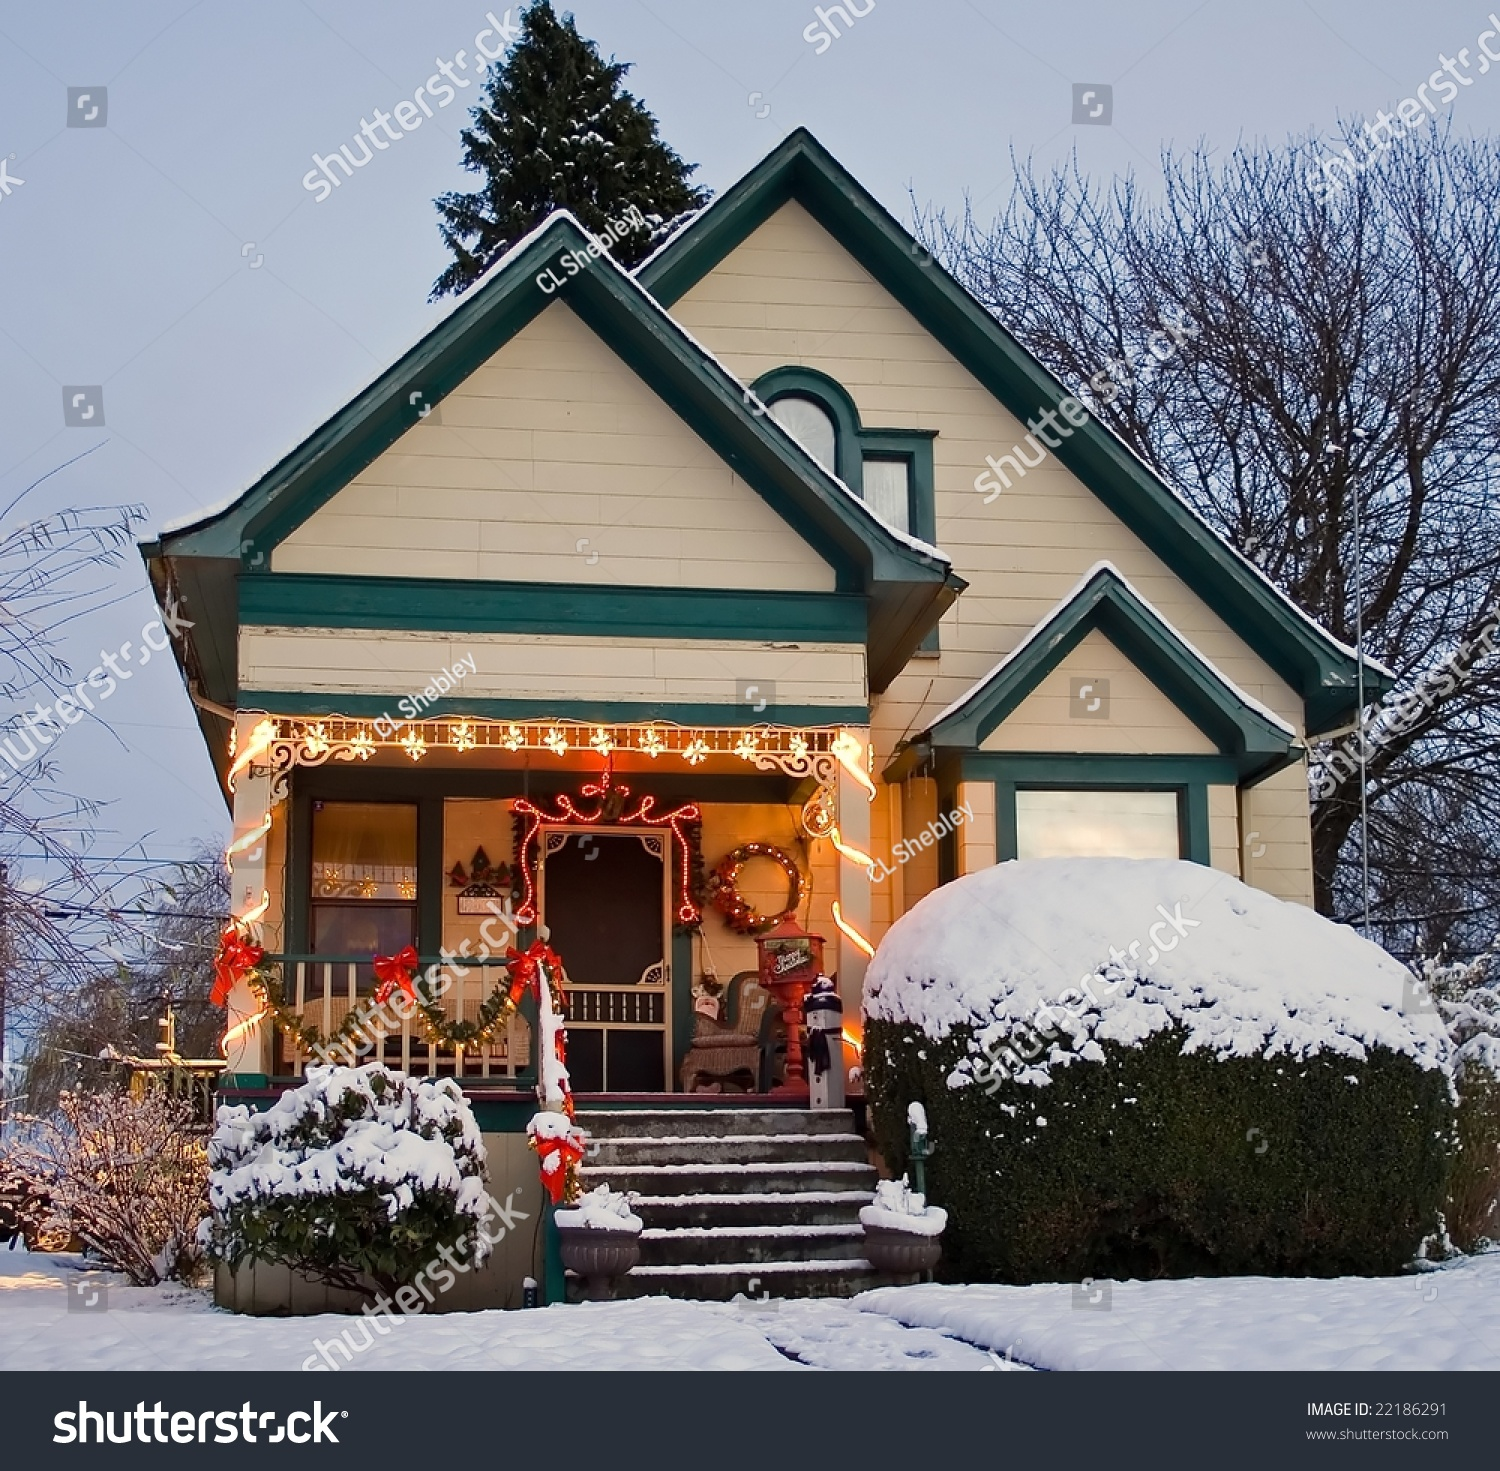 A Yellow Victorian House With Green Trim And Christmas